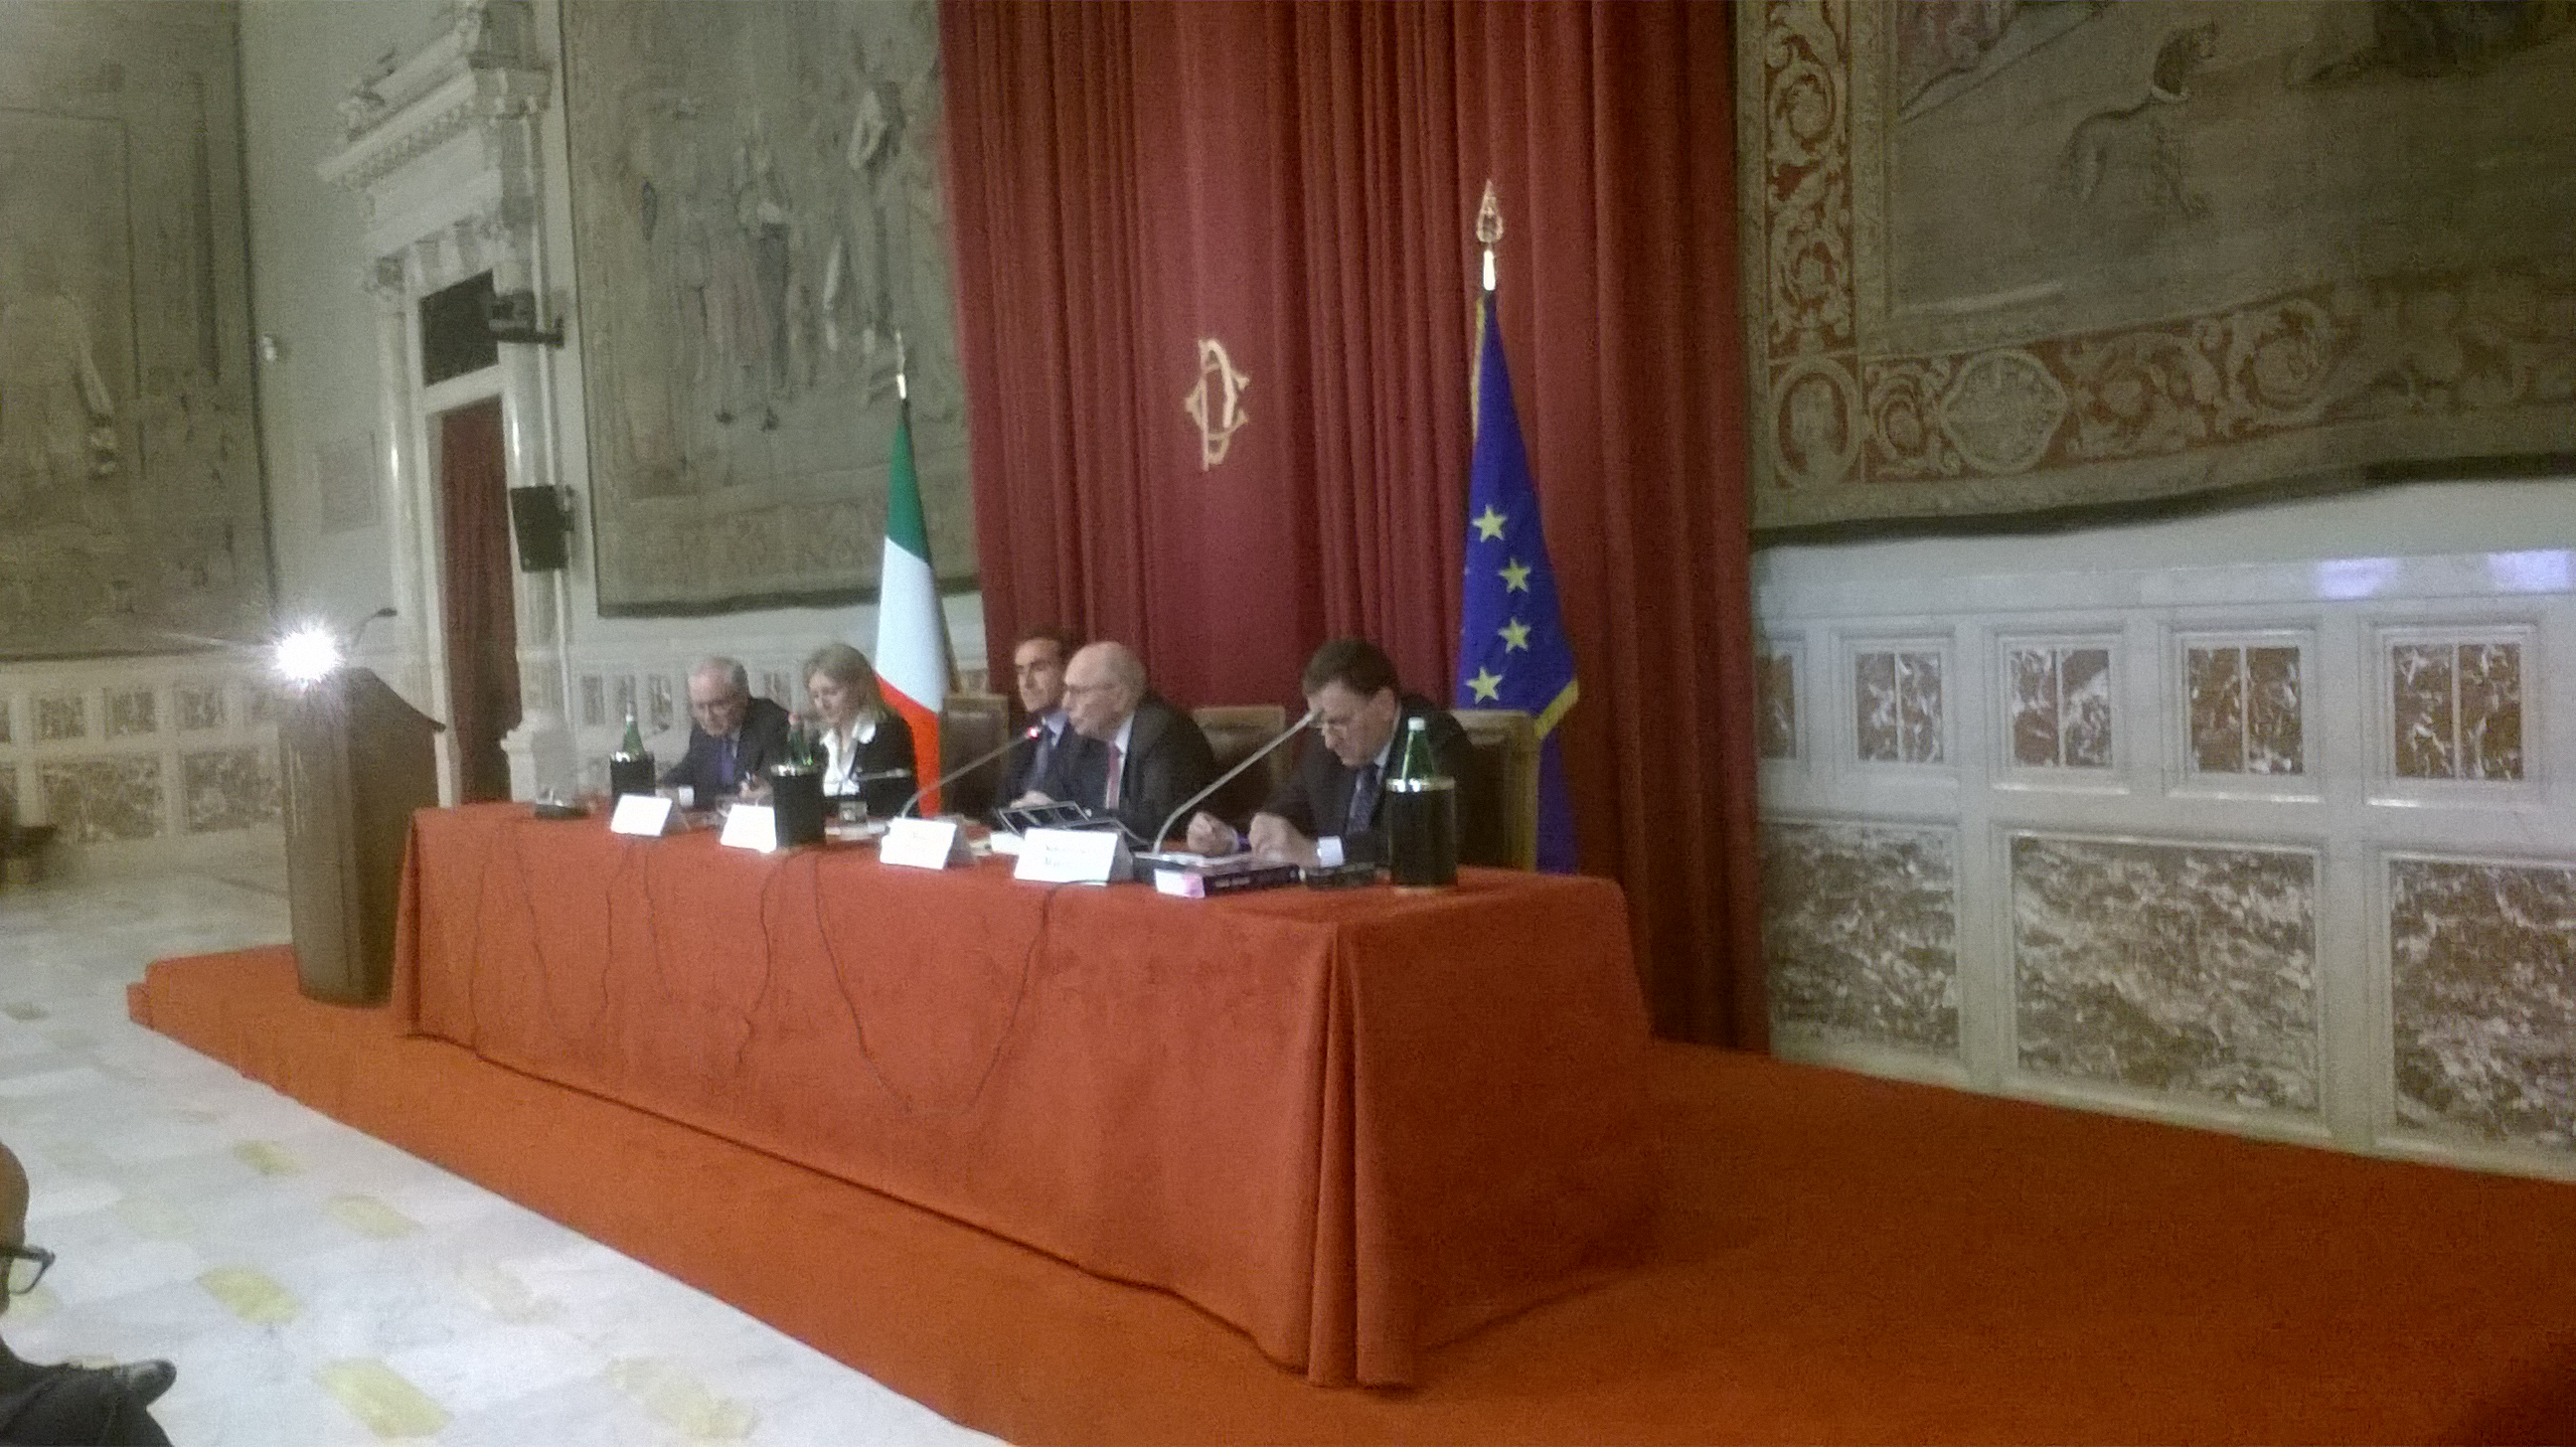 Professor Mario Mignone and Panel addressing the Chamber of Deputies in Queens Hall, Italian Parliament, Rome, Italy. Left to right: Franco Vitelli, Giulia Dell'Aquila, Hon. Stefano Dambruoso, Mario Mignone, Sebastiano Martelli